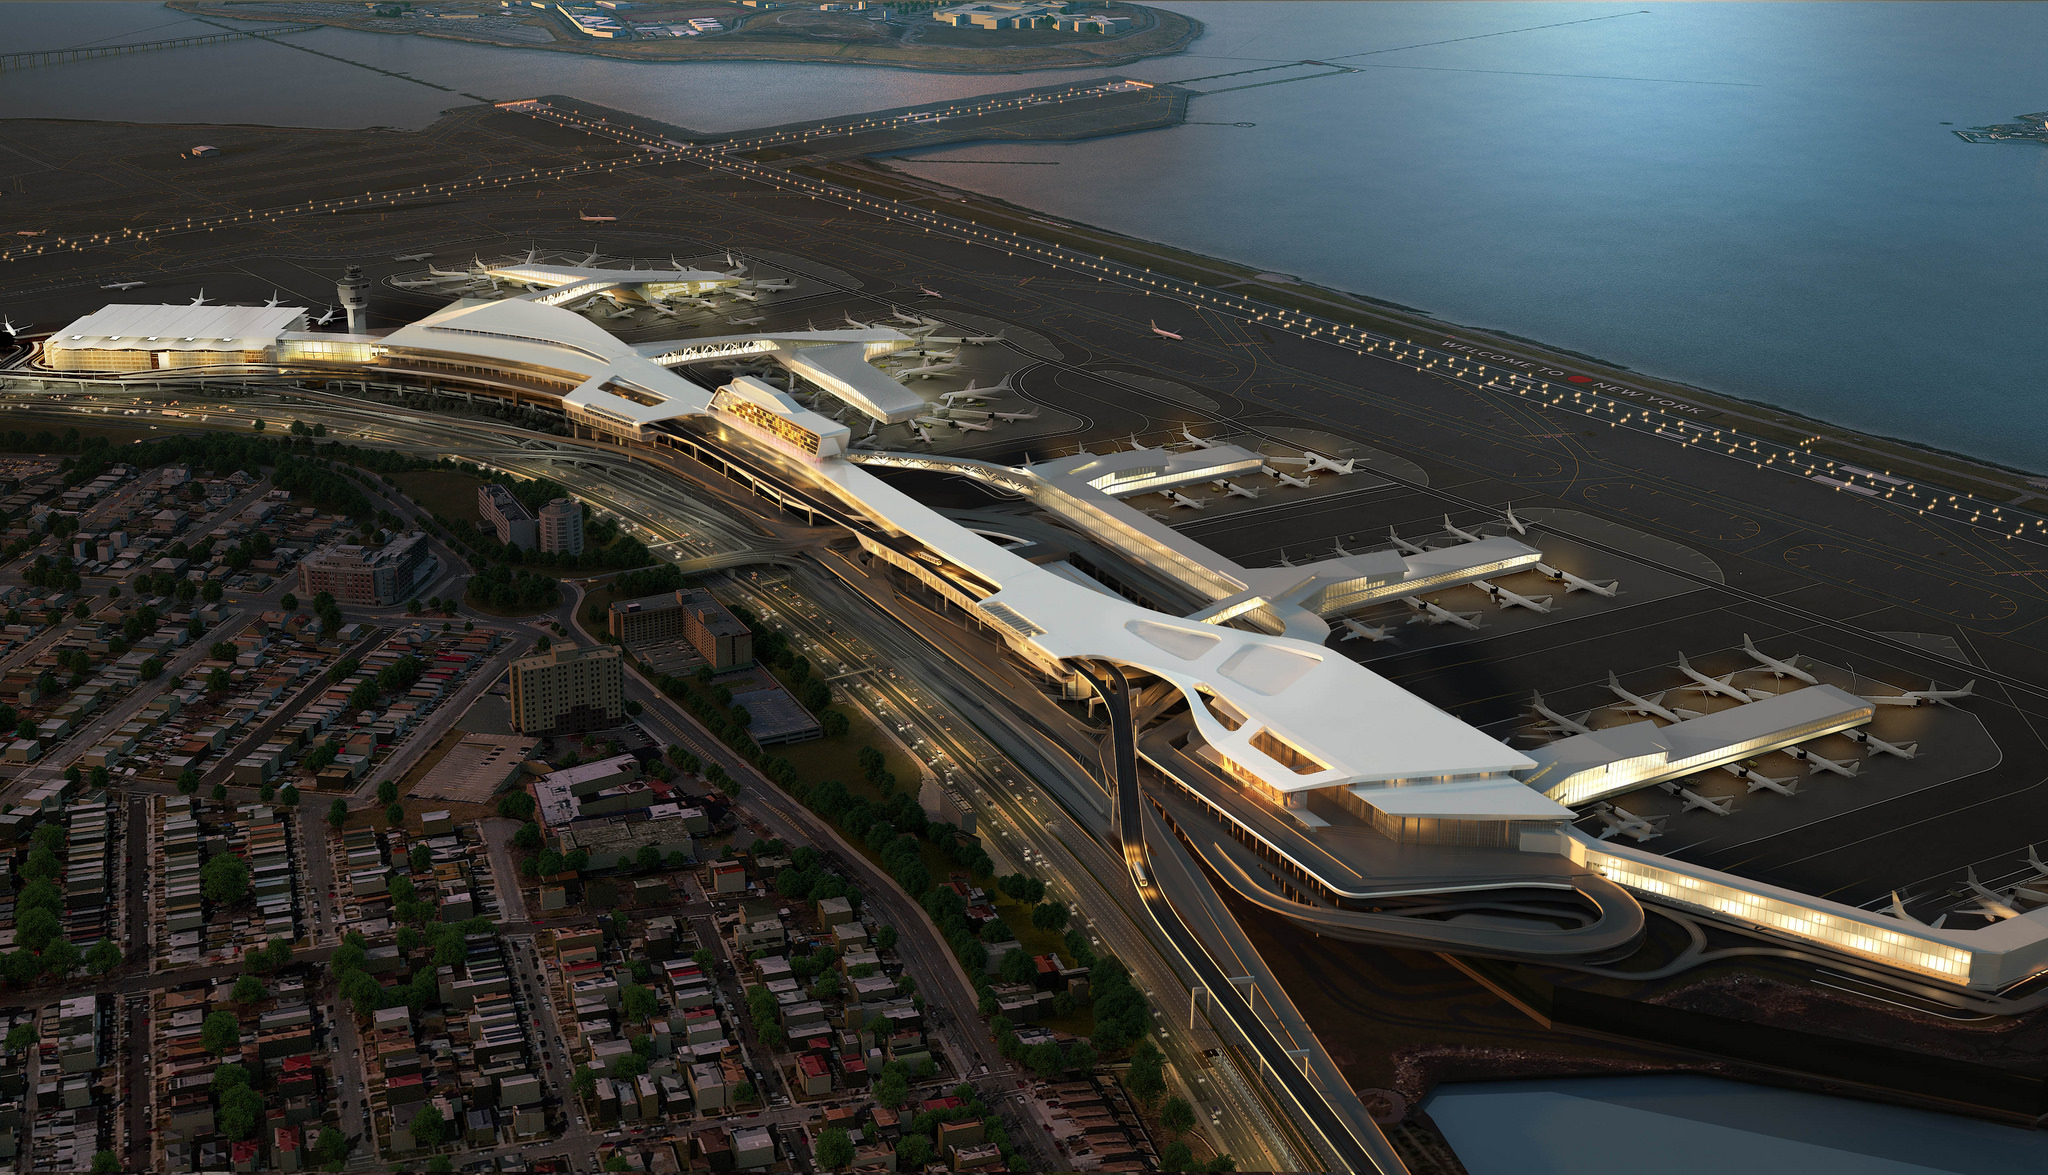 LaGuardia Airport overhaul, Governer Andrew Cuomo, LaGuardia renovation